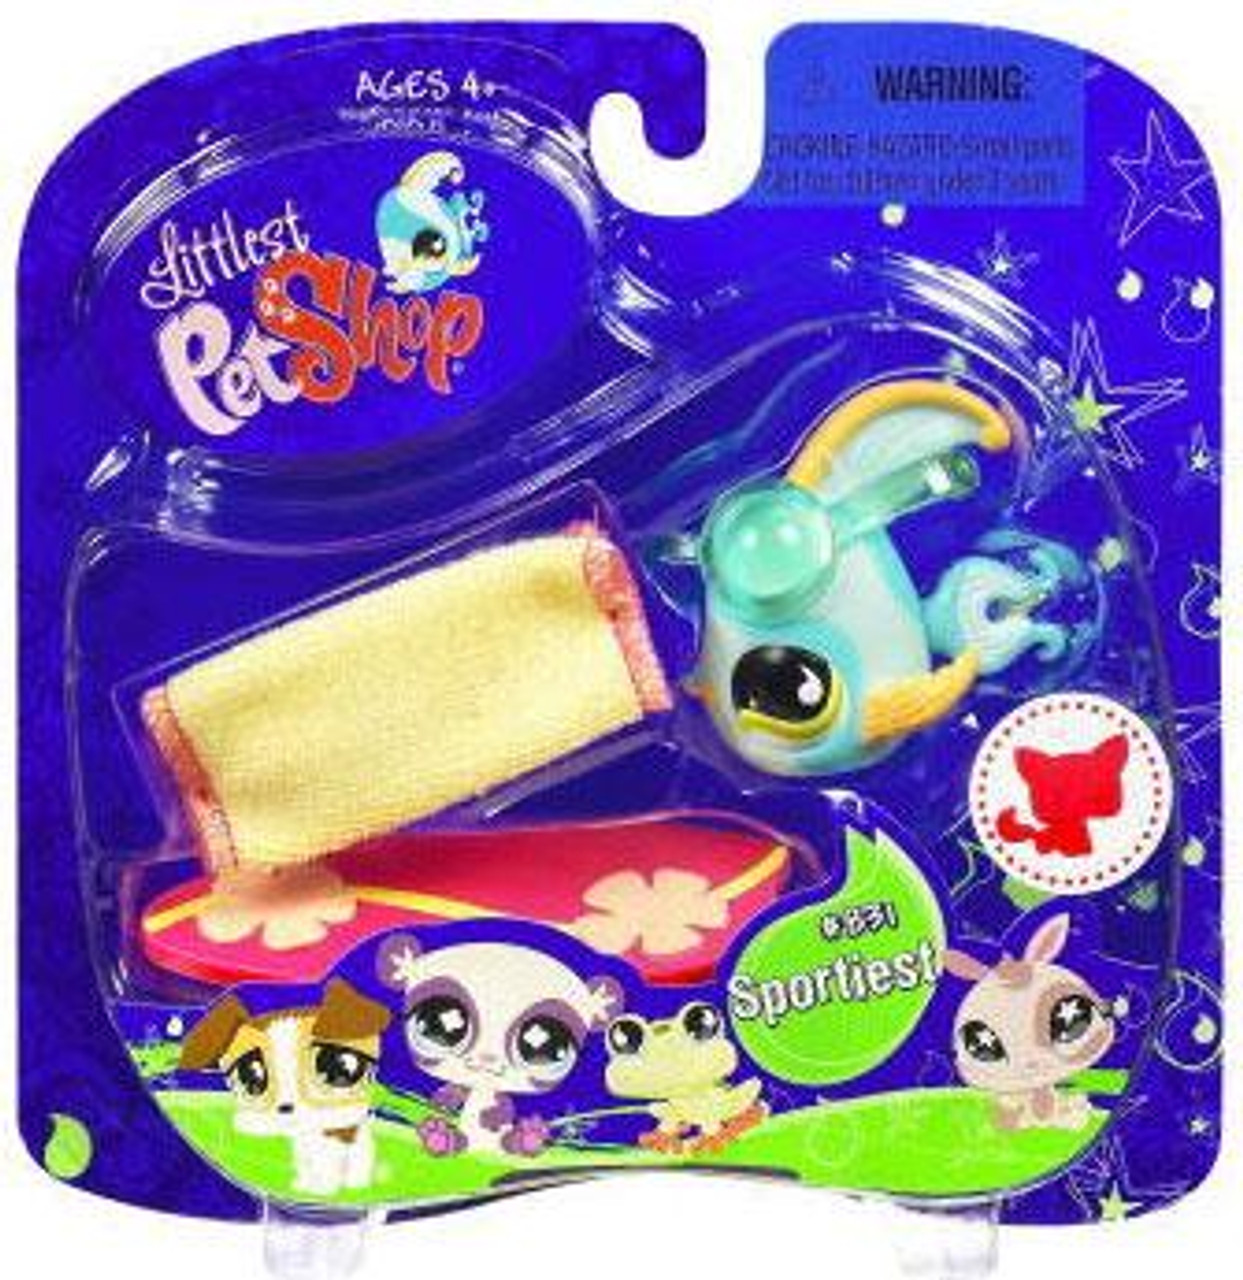 Littlest Pet Shop 2009 Assortment B Series 2 Angelfish Figure #831 [Blue with Surf Board]